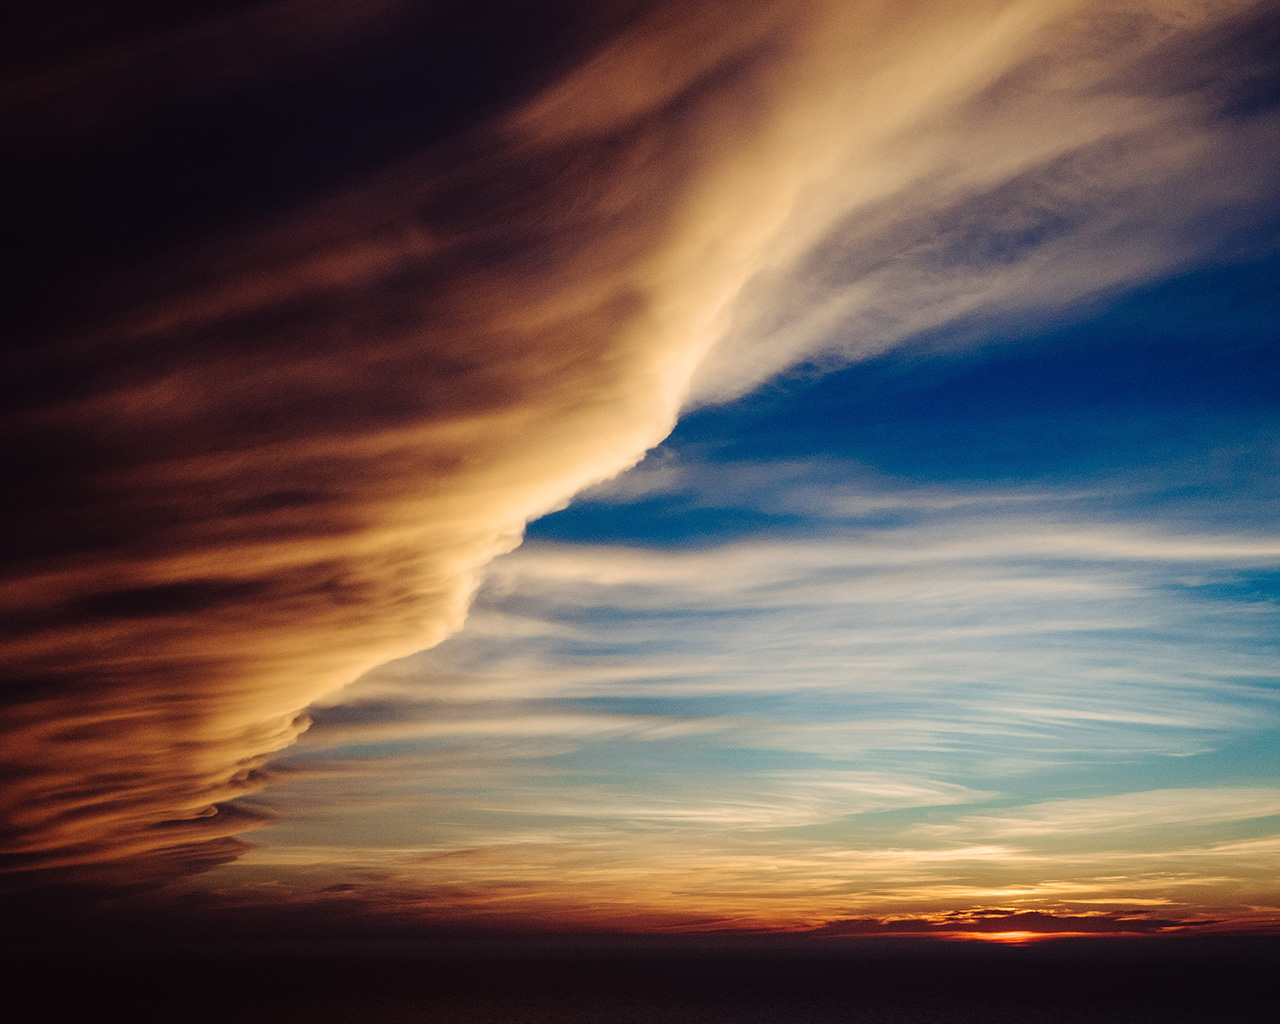 wallpaper for desktop, laptop | nt80-cloud-sky-rainbow ...